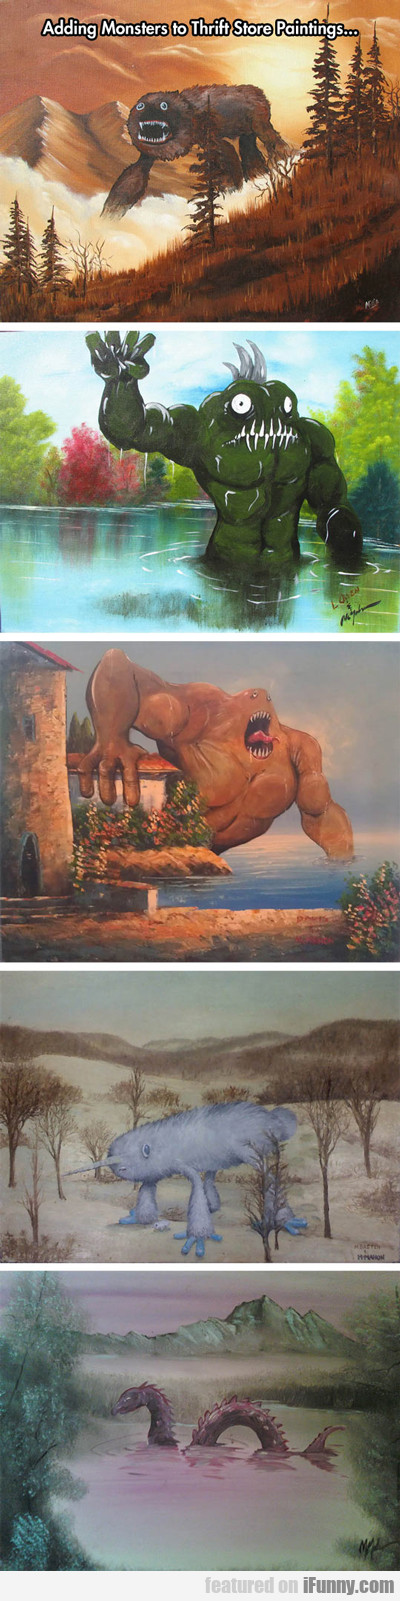 Adding Monsters To Thrift Store Paintings...